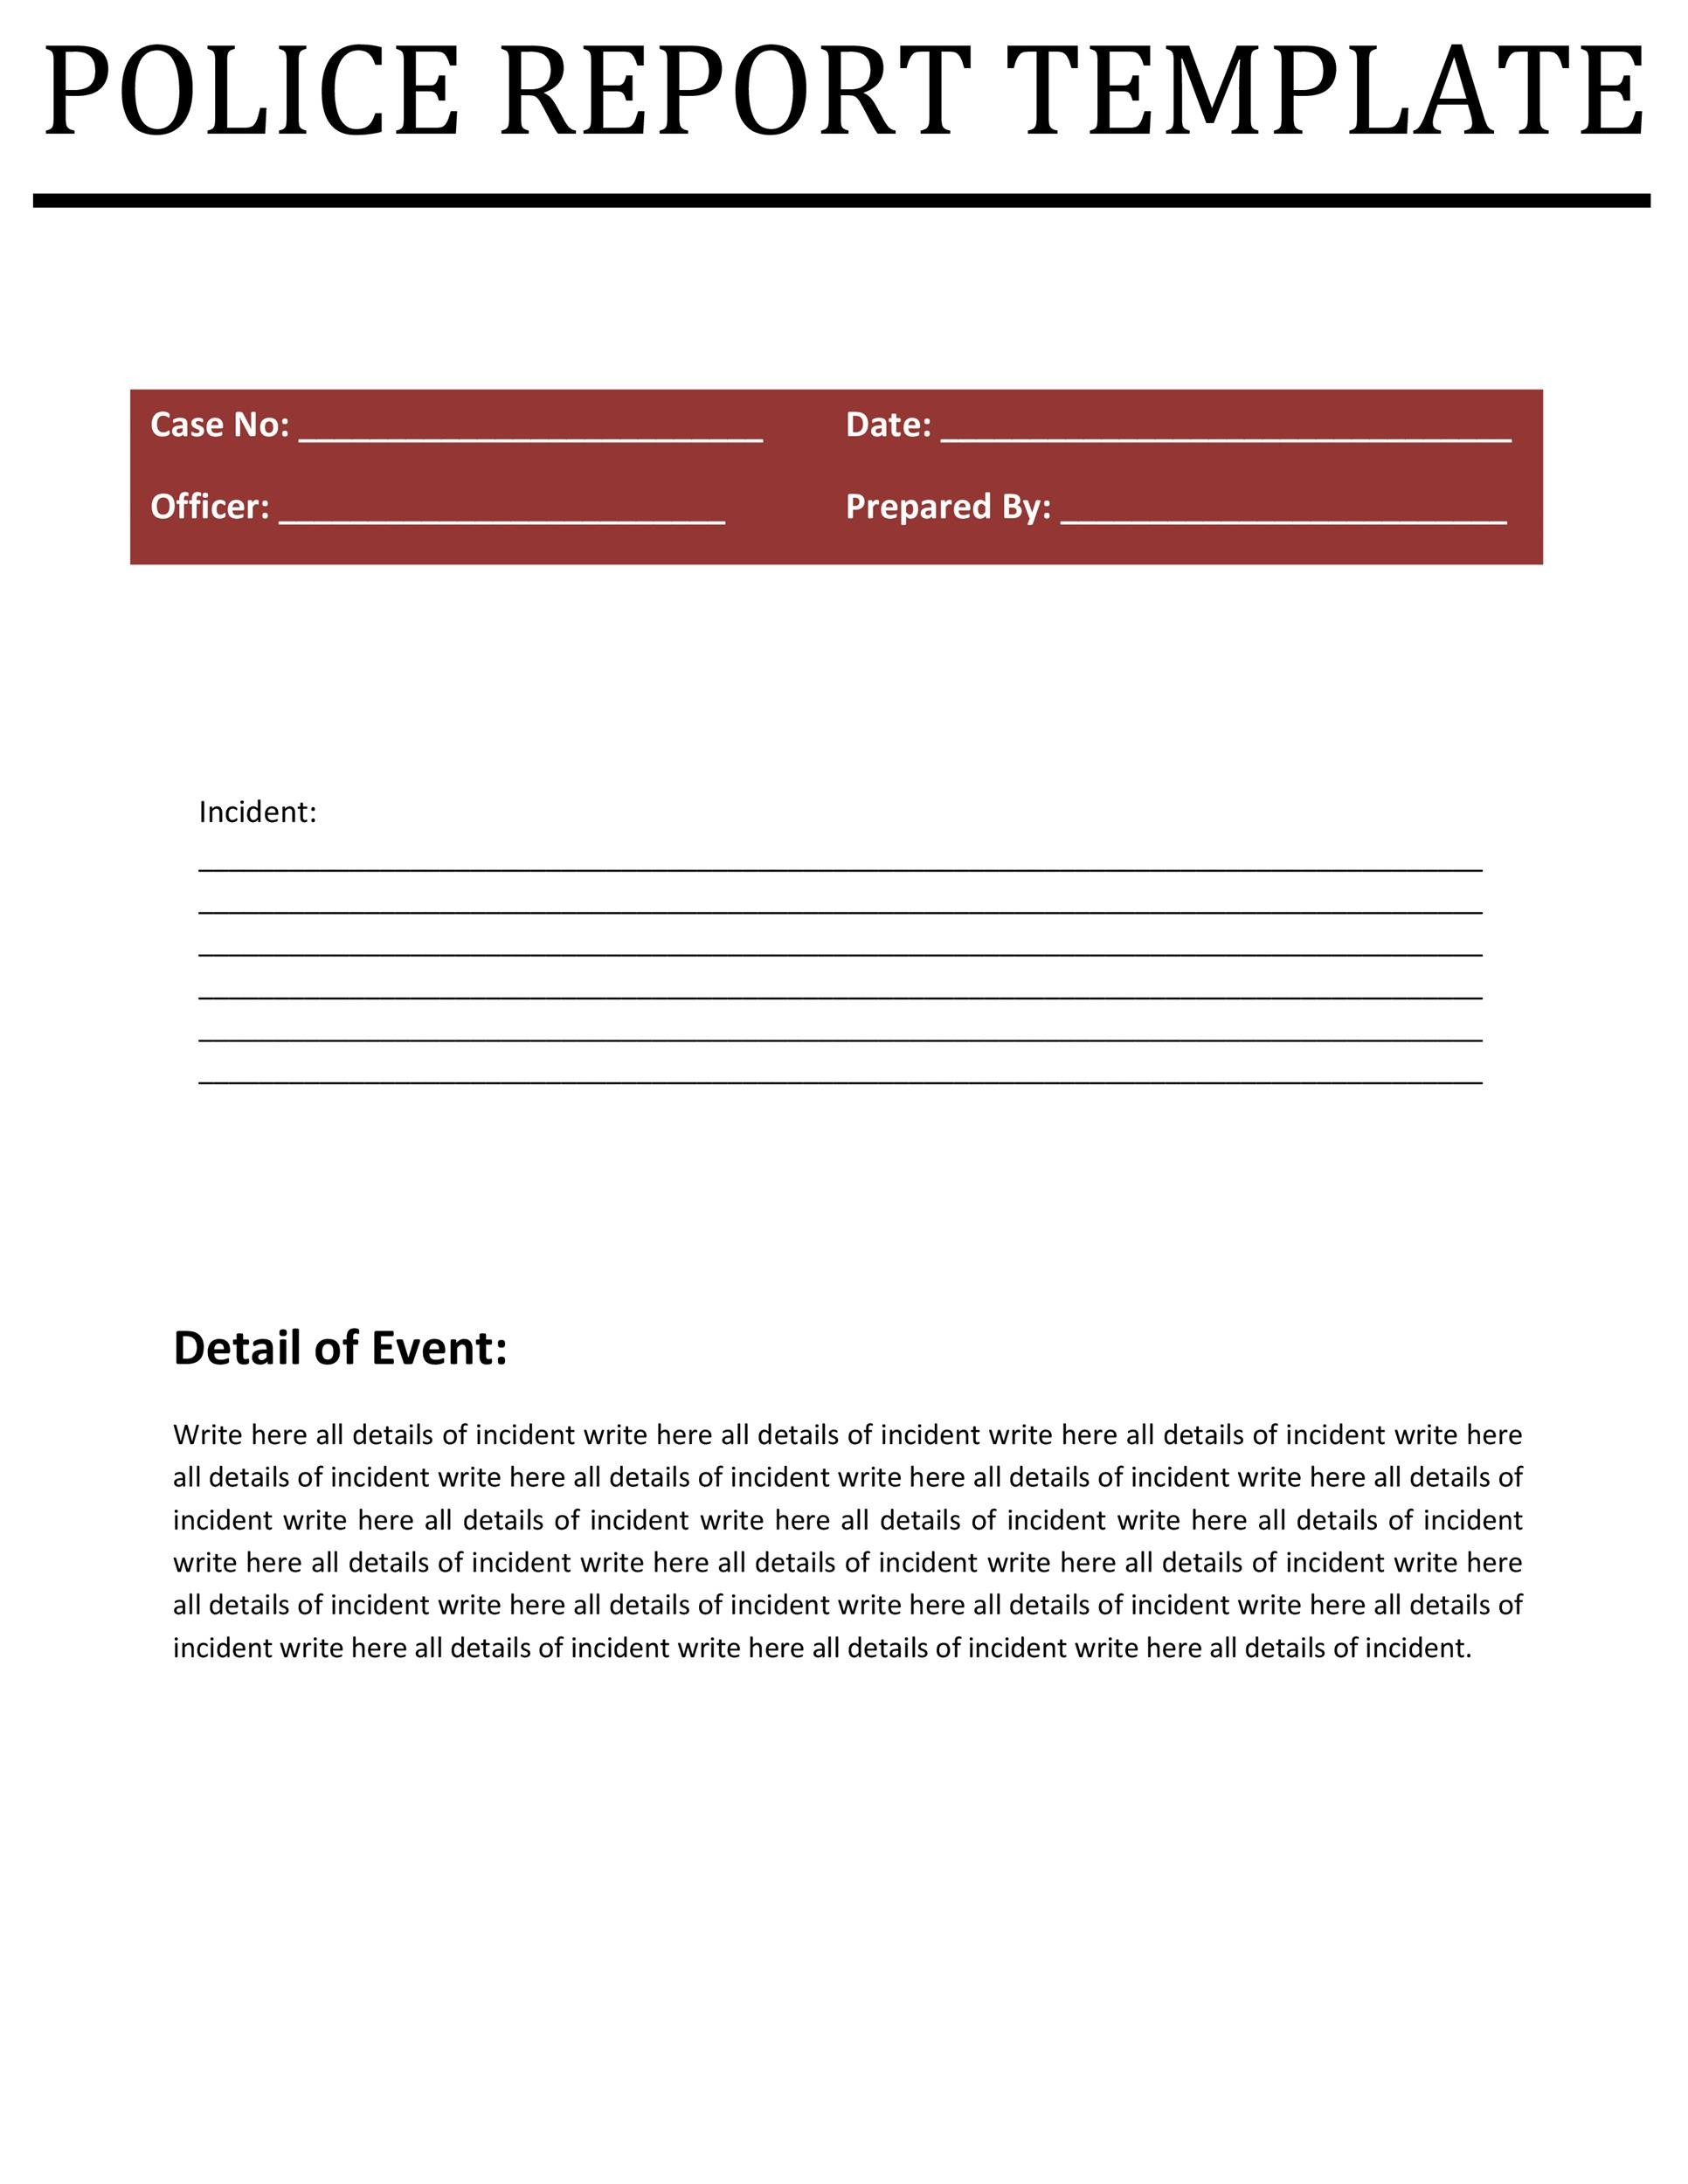 Free police report template 04